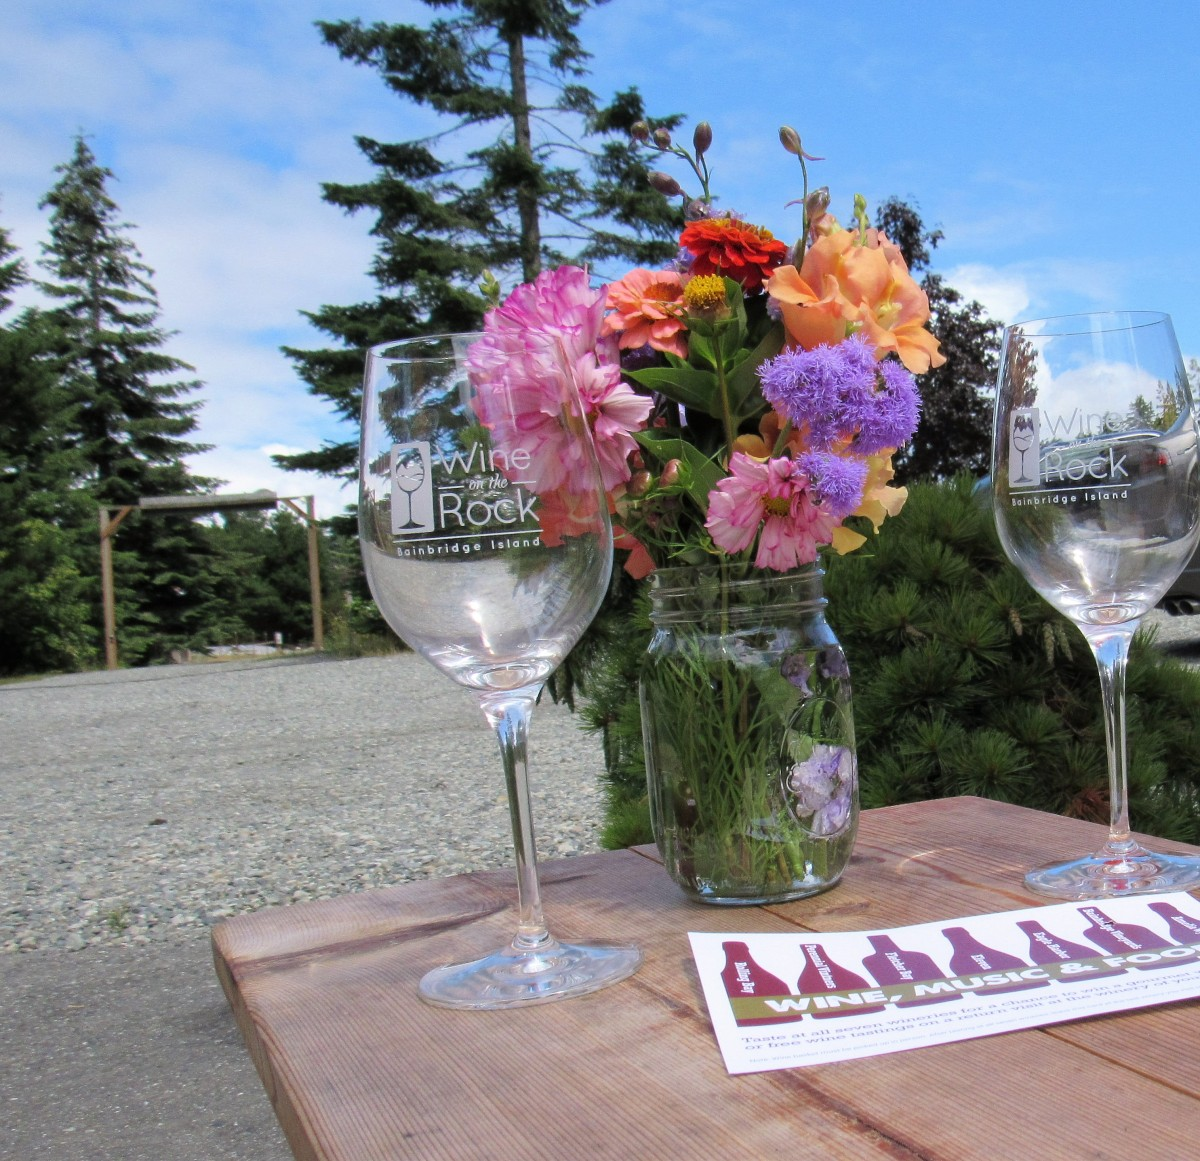 Wine On The Rock: Bainbridge Island